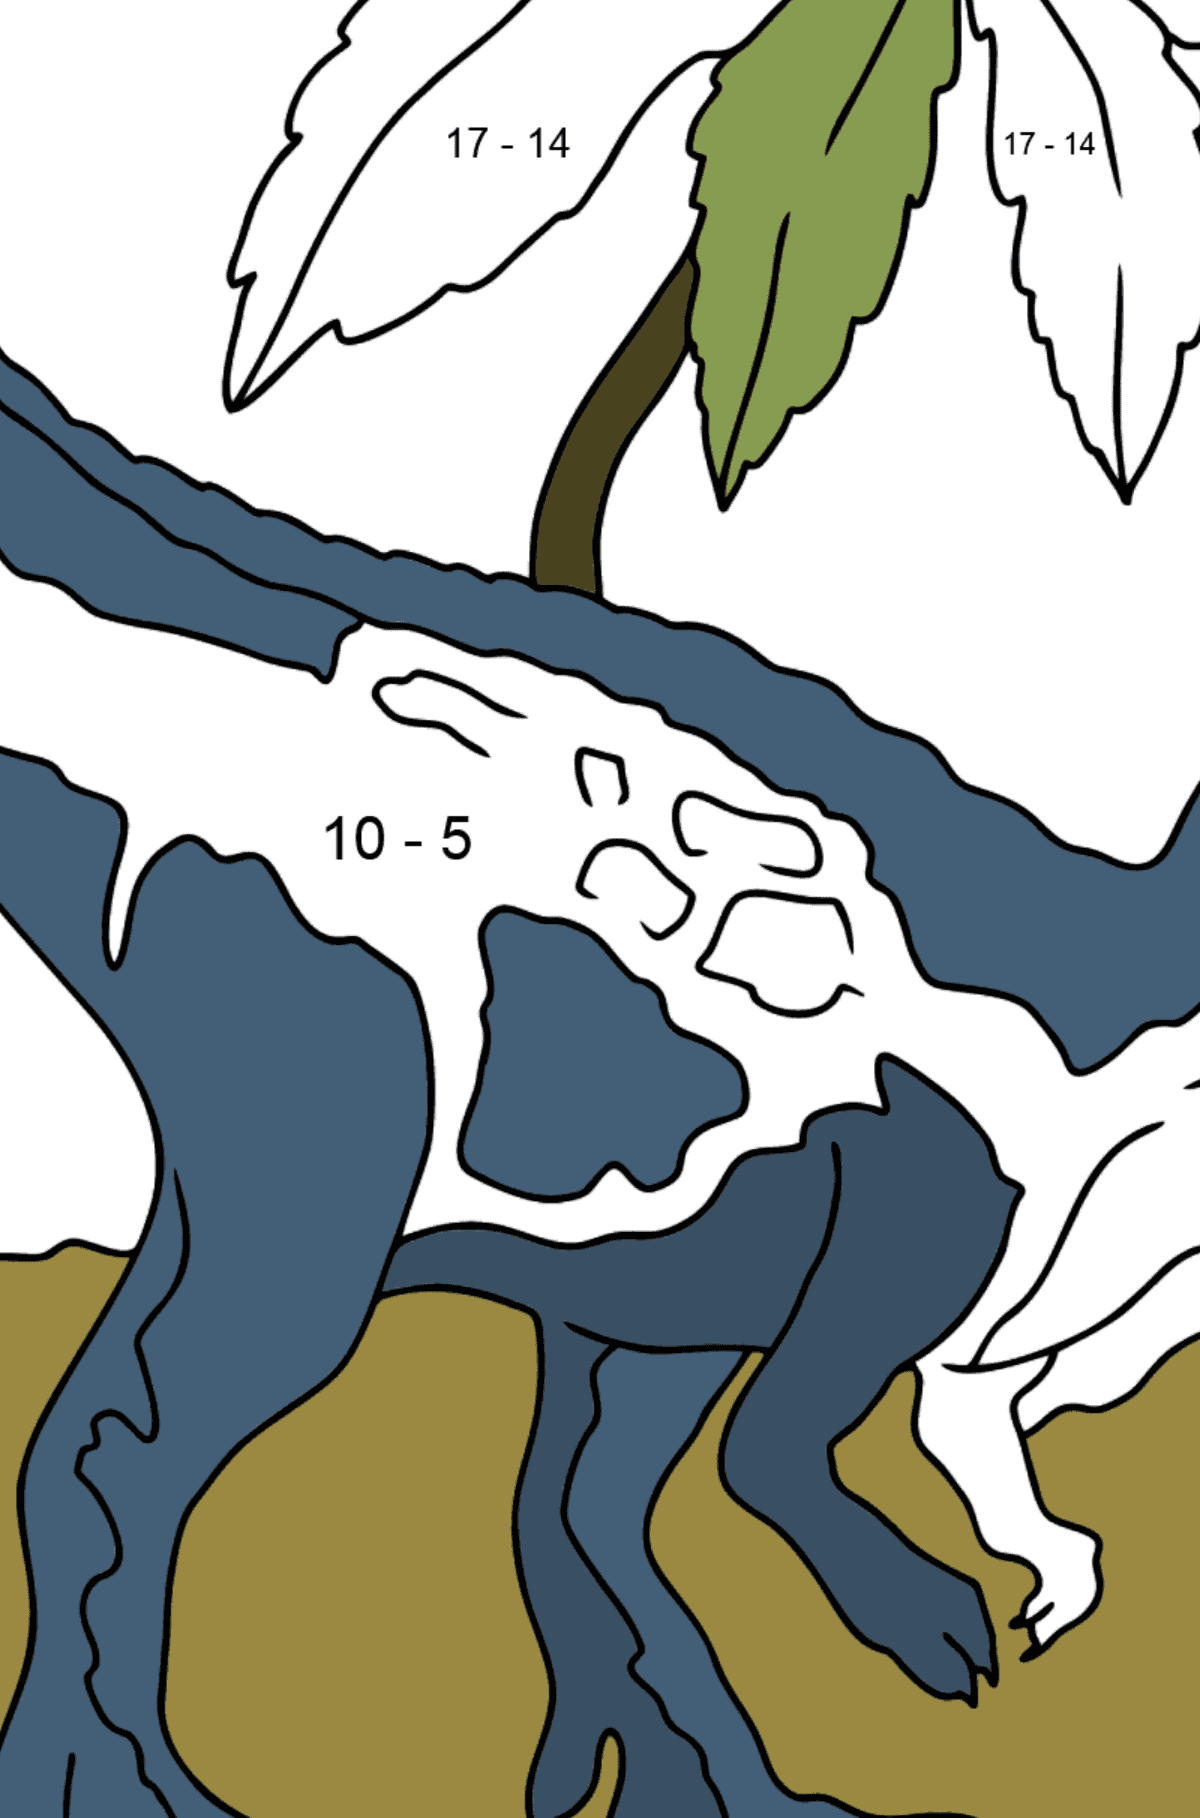 Coloring Page - Tyrannosaurus - A Terrestrial Predator - Math Coloring - Subtraction for Kids